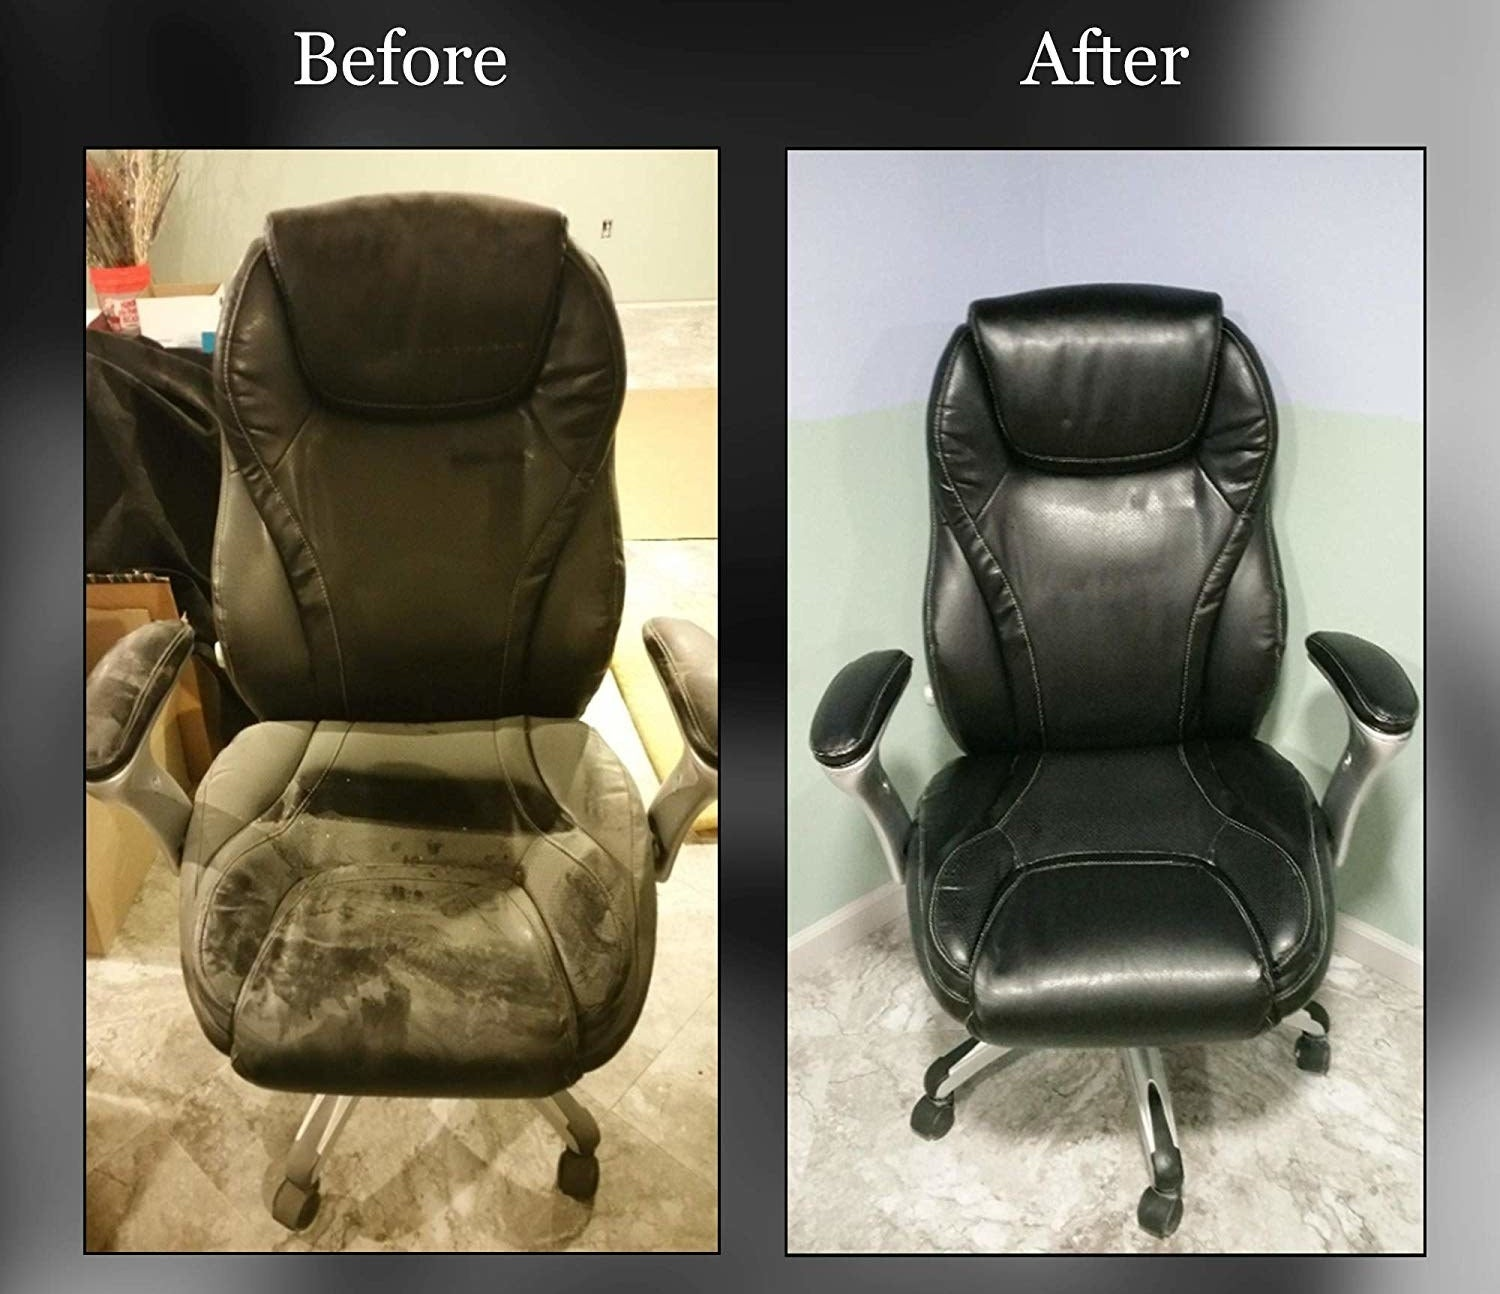 A before and after comparison showing a dirty computer chair and a chair that looks brand new